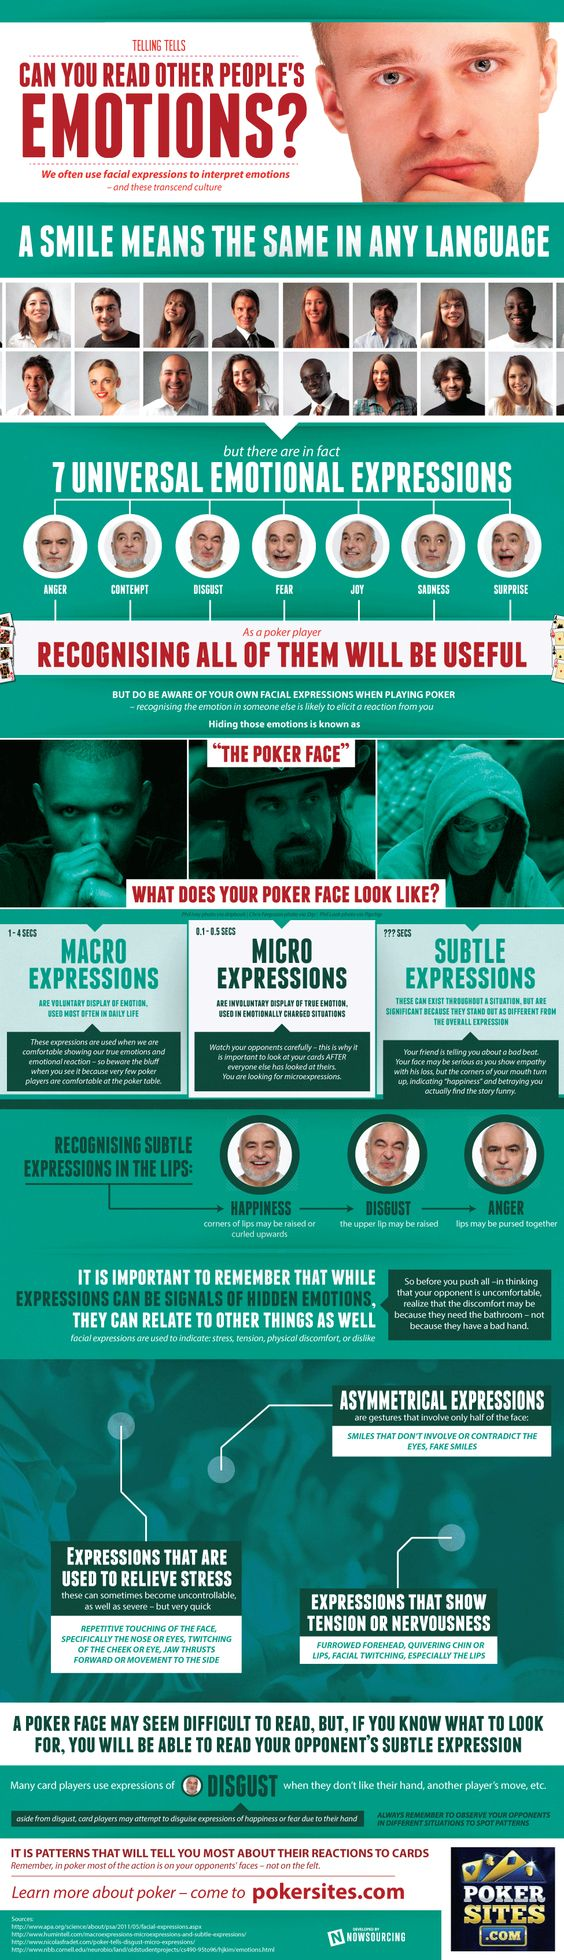 Can you read other people's emotions #infografia #infographic #psychology: